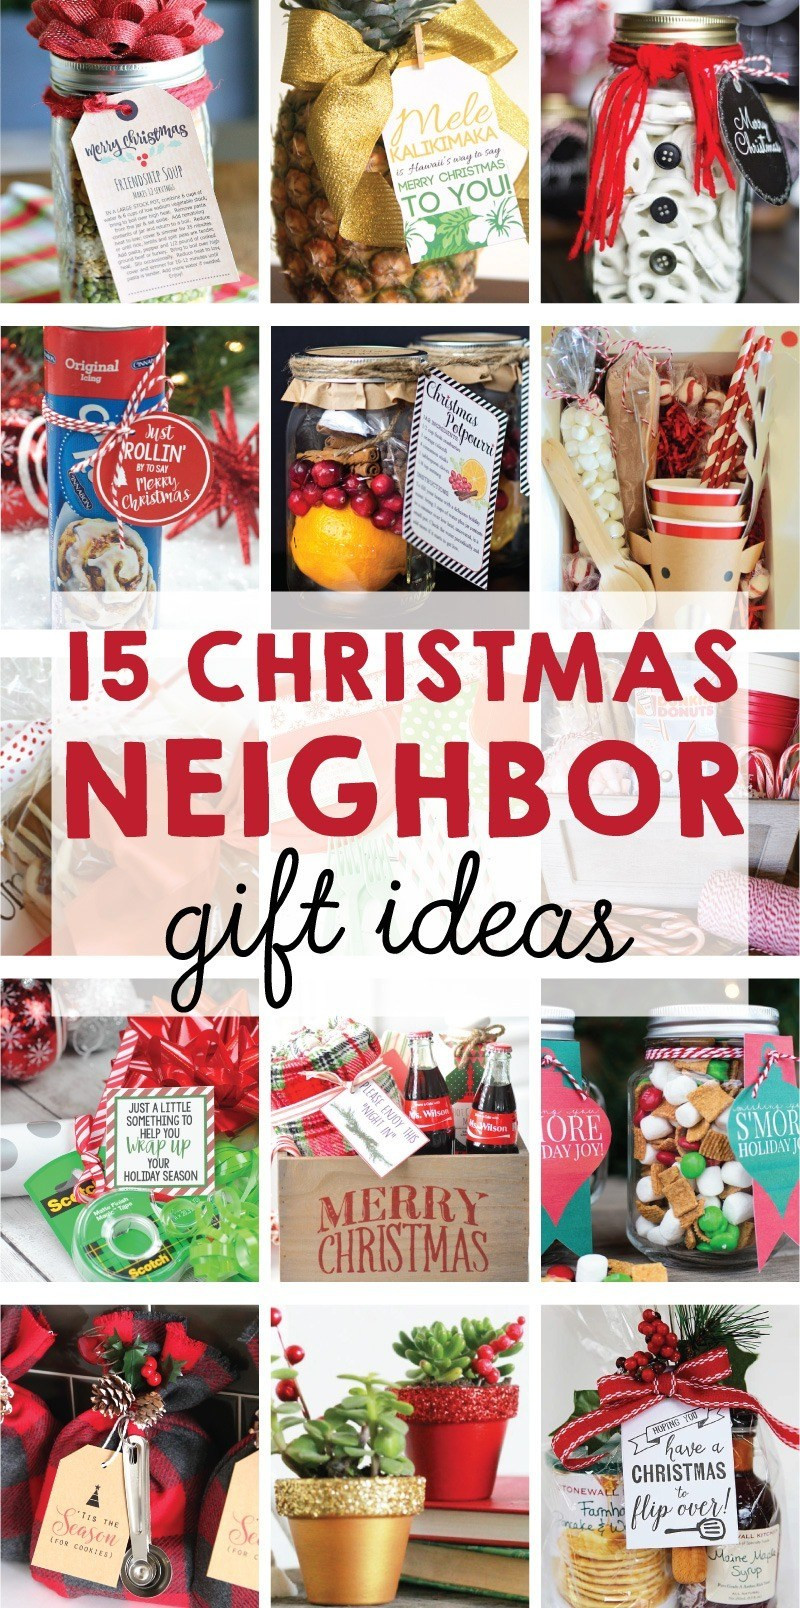 Best ideas about Top Ten Gift Ideas For Neighbors . Save or Pin The BEST 15 Christmas Neighbor Gift Ideas on Love the Day Now.